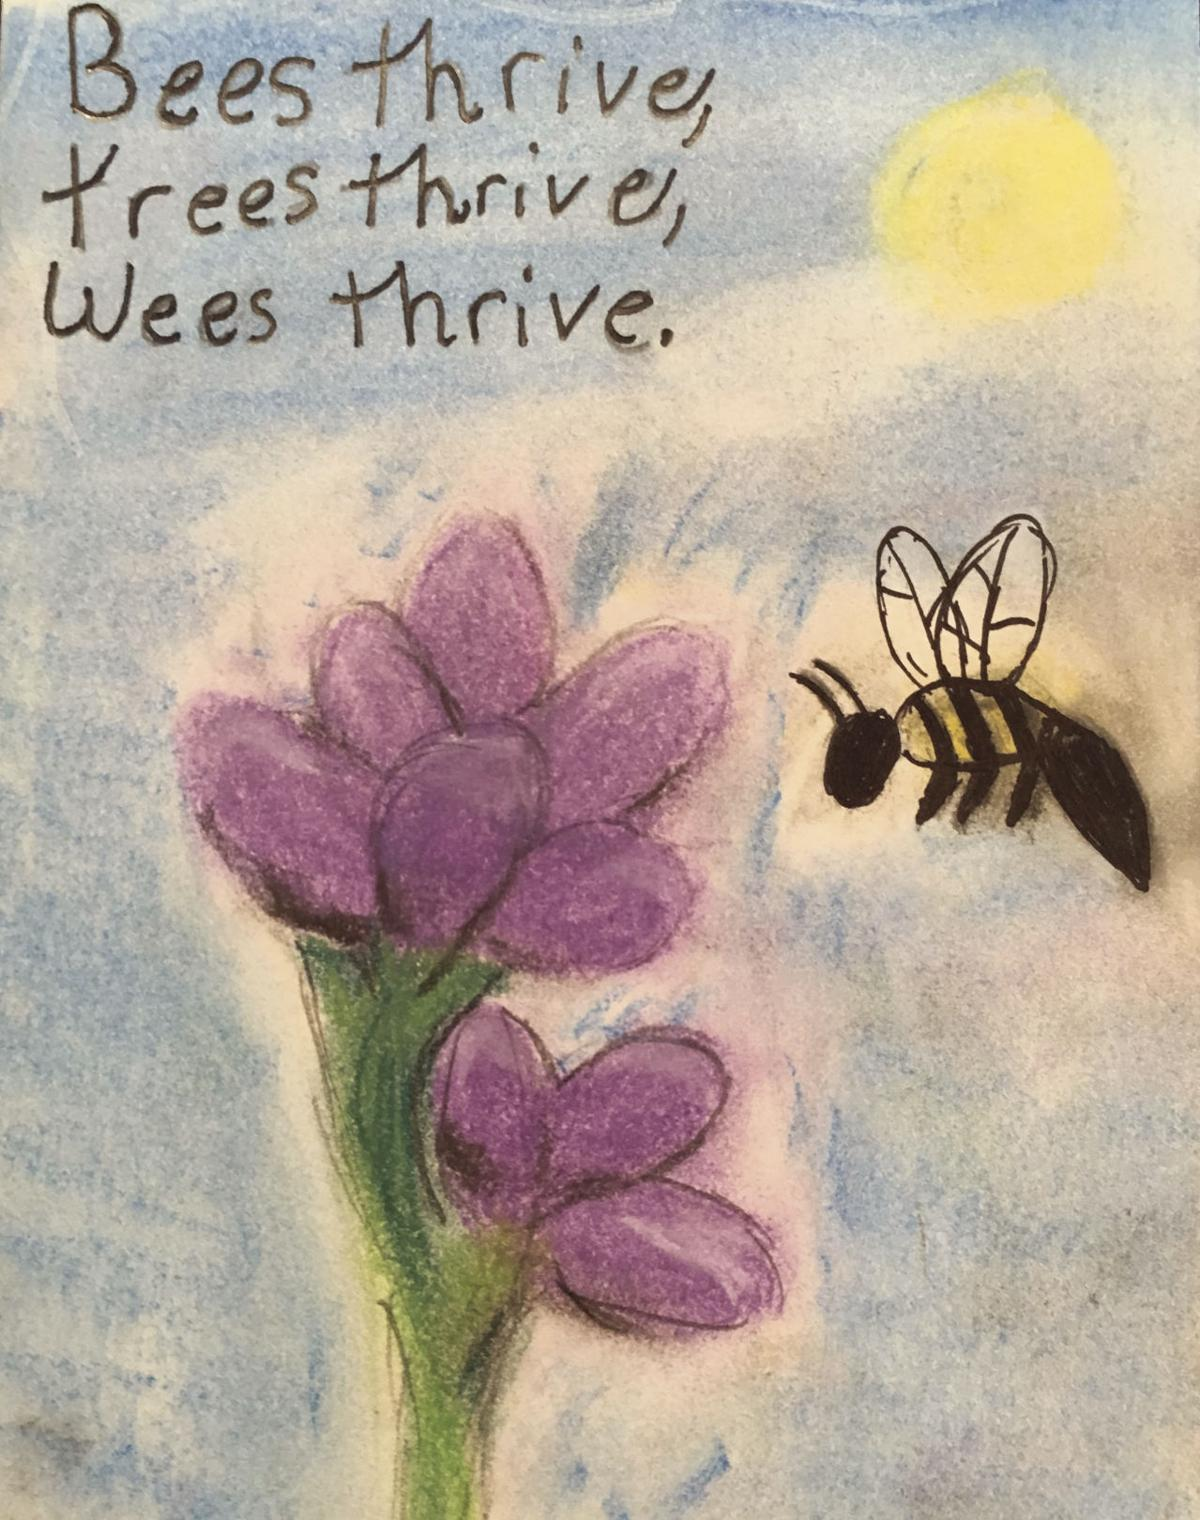 Bees thrive